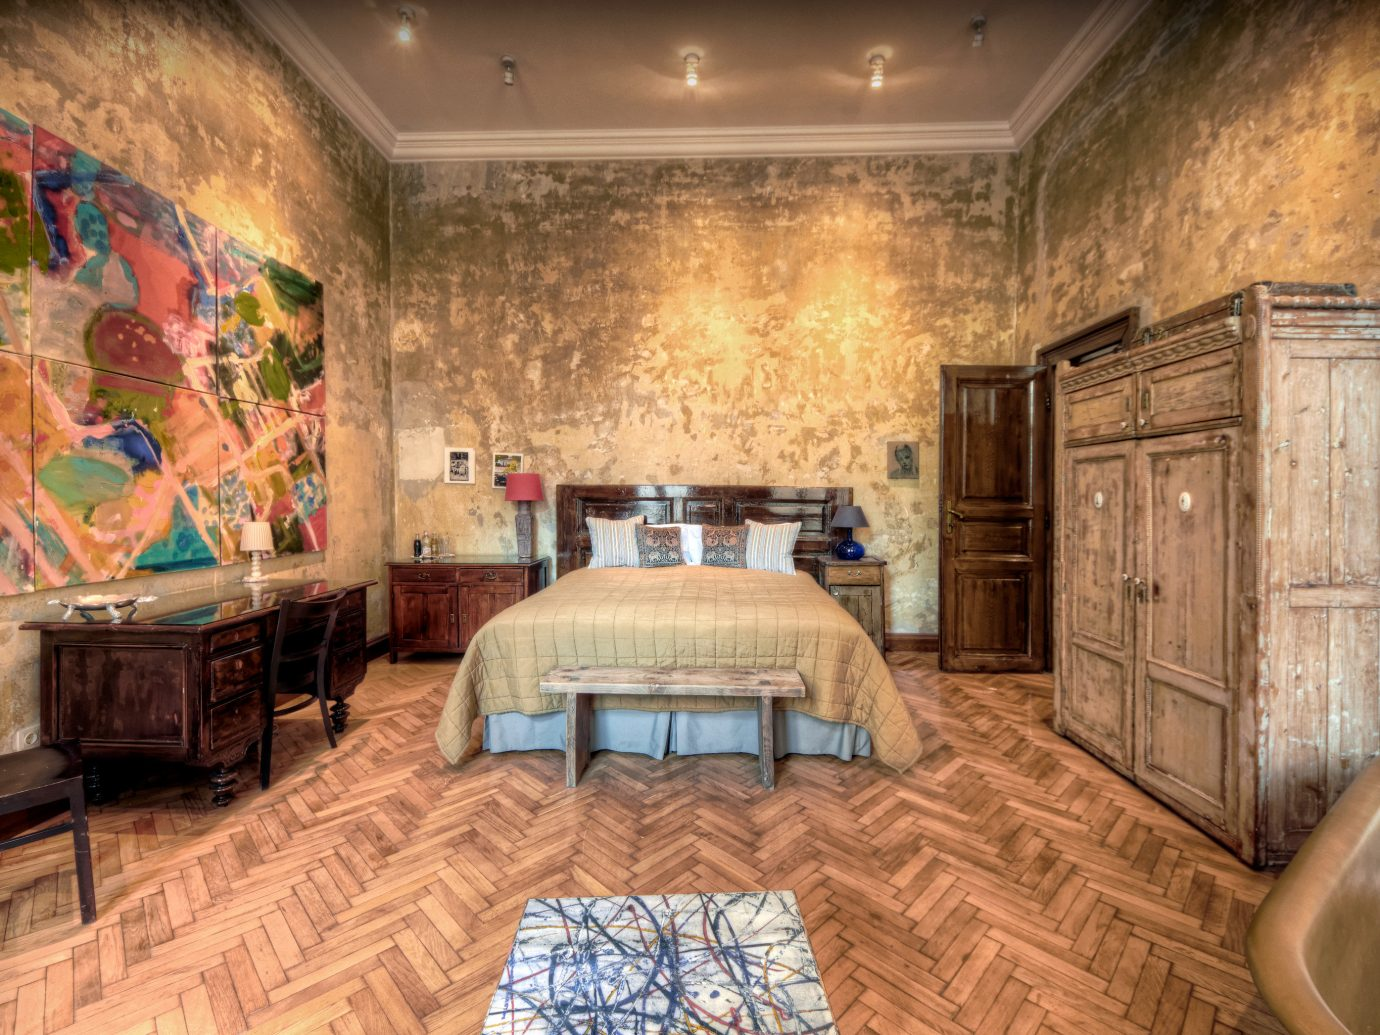 Bedroom Budapest Cultural Design europe Hotels Hungary Modern Rustic indoor floor wall Living room property estate furniture ceiling mansion living room home interior design cottage Lobby real estate old wood decorated cluttered